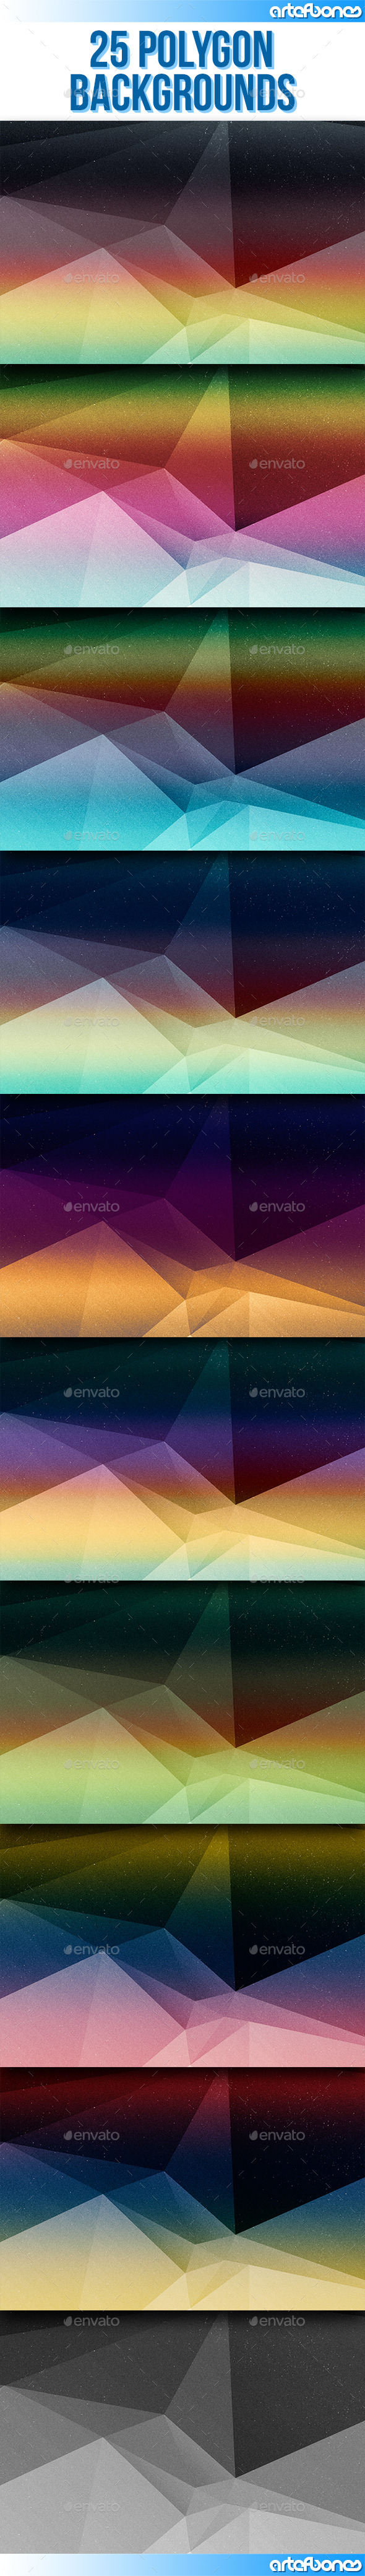 GraphicRiver 10 Polygon Backgrounds V.2 11578091